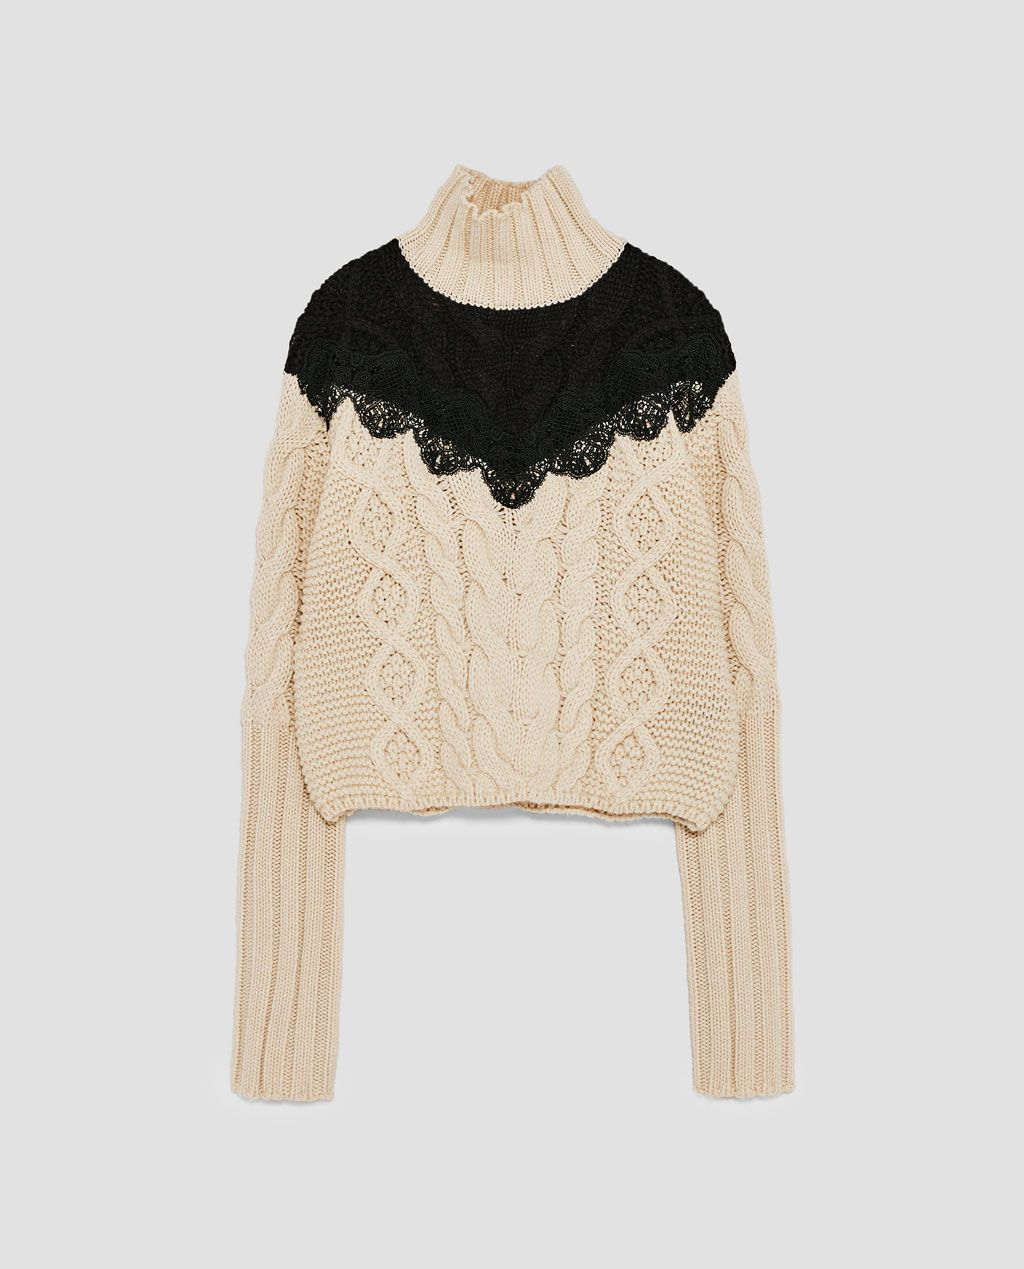 2820183bf2ceb7 Image 8 of CABLE-KNIT SWEATER WITH LACE NECKLINE from Zara